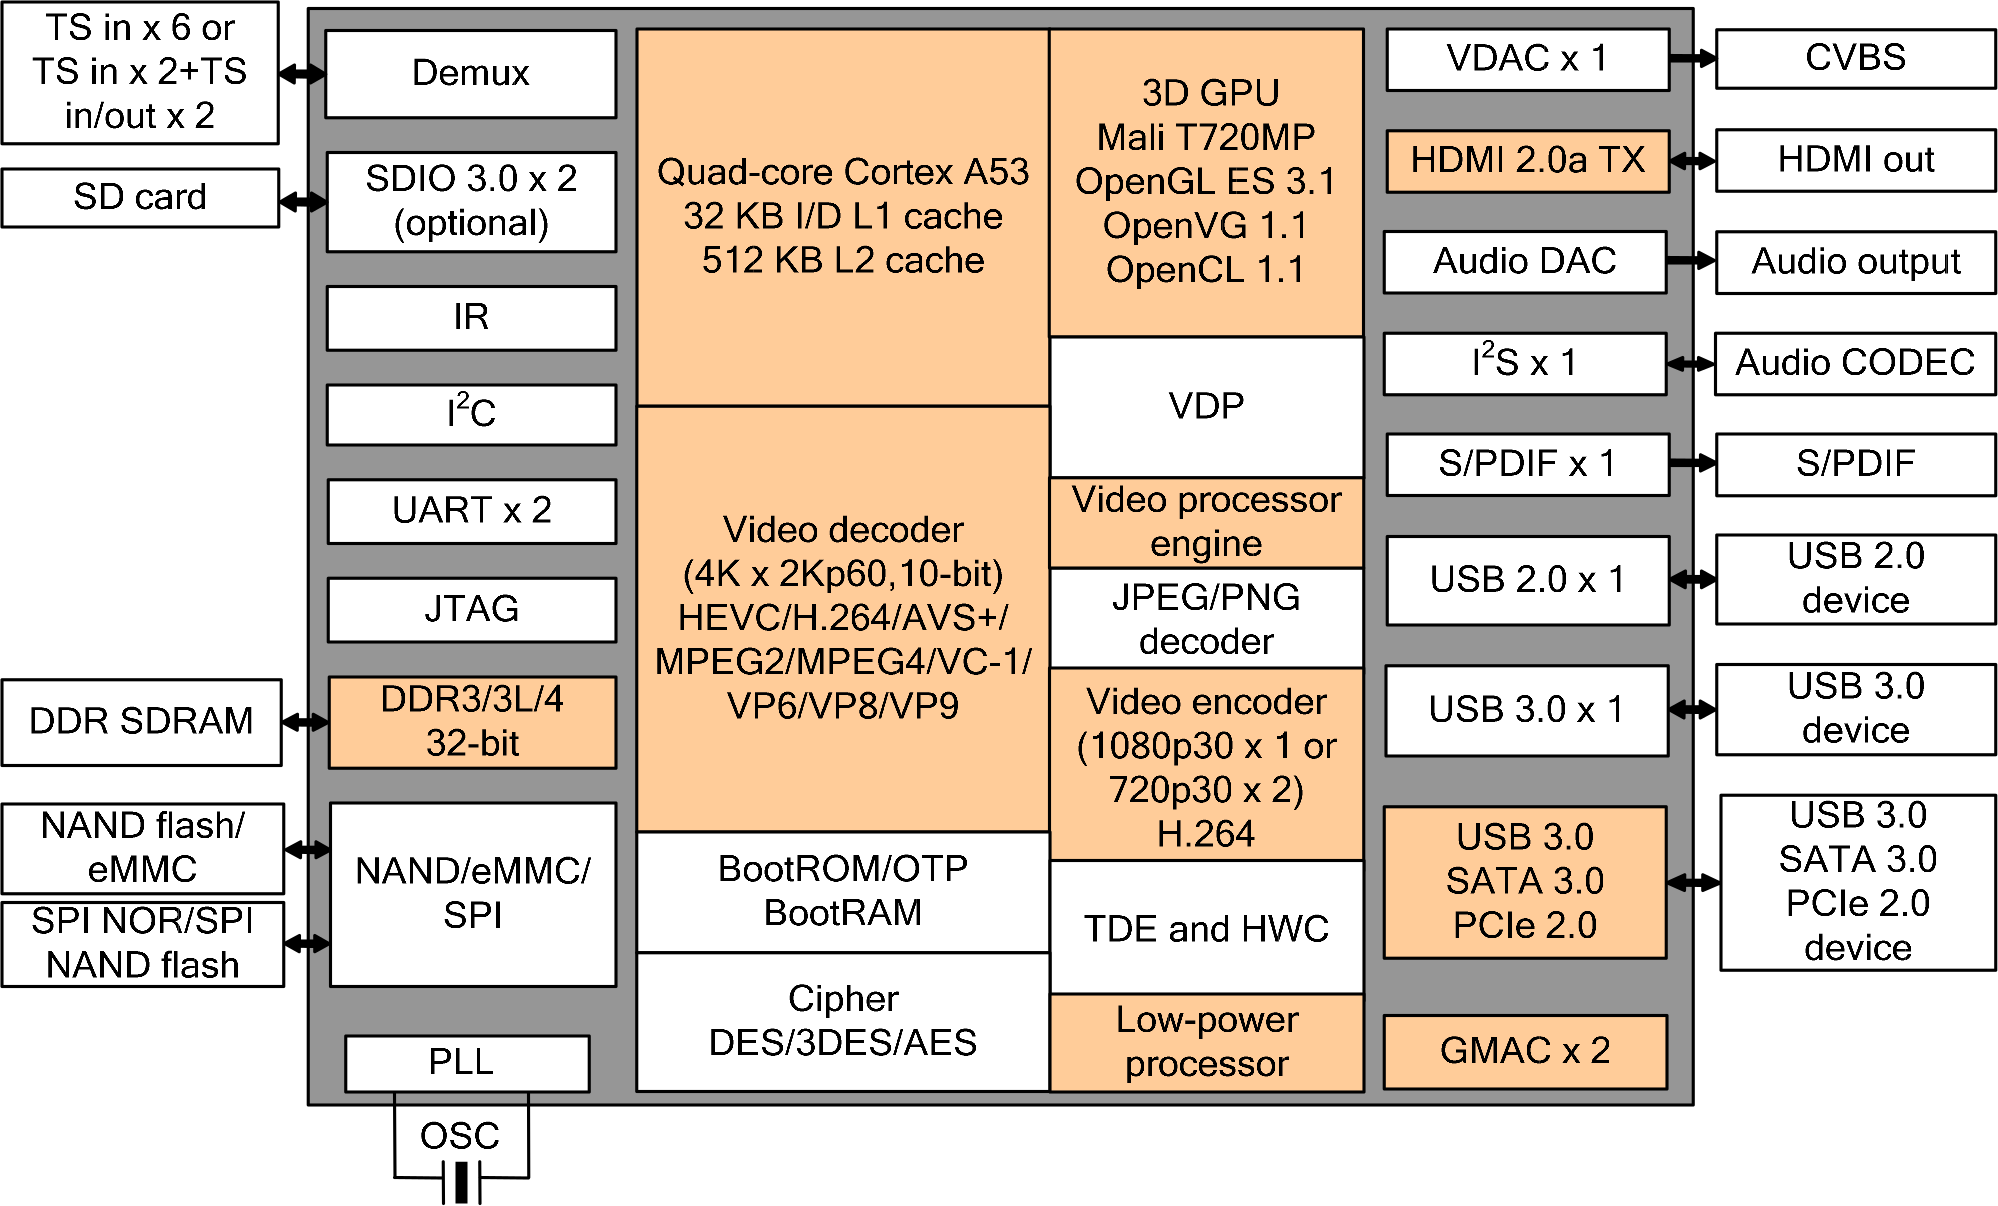 Hi3798C V200 Block Diagram - Click to Enlarge